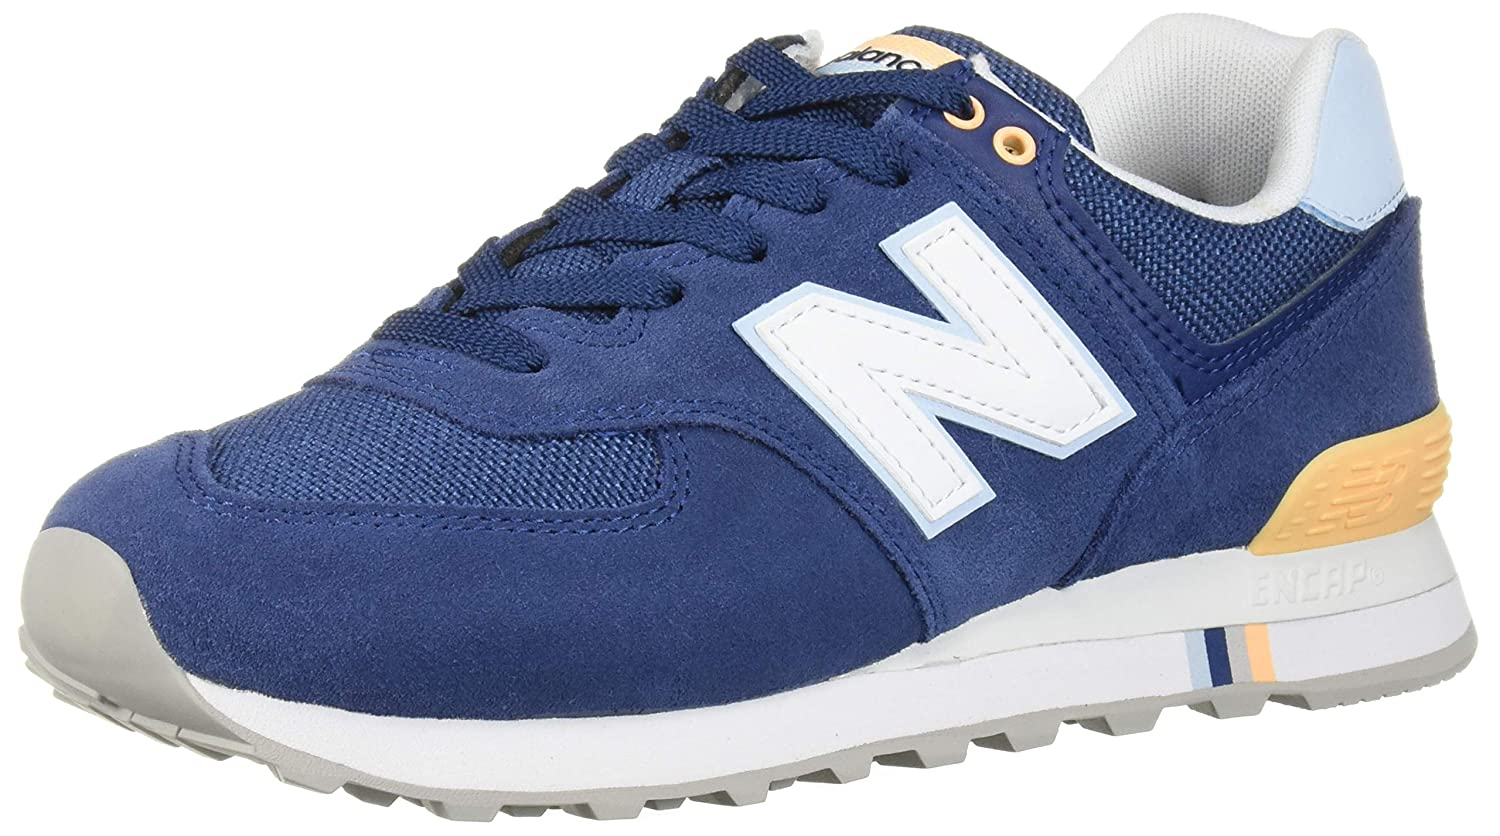 new balance 574 summer shore sneaker